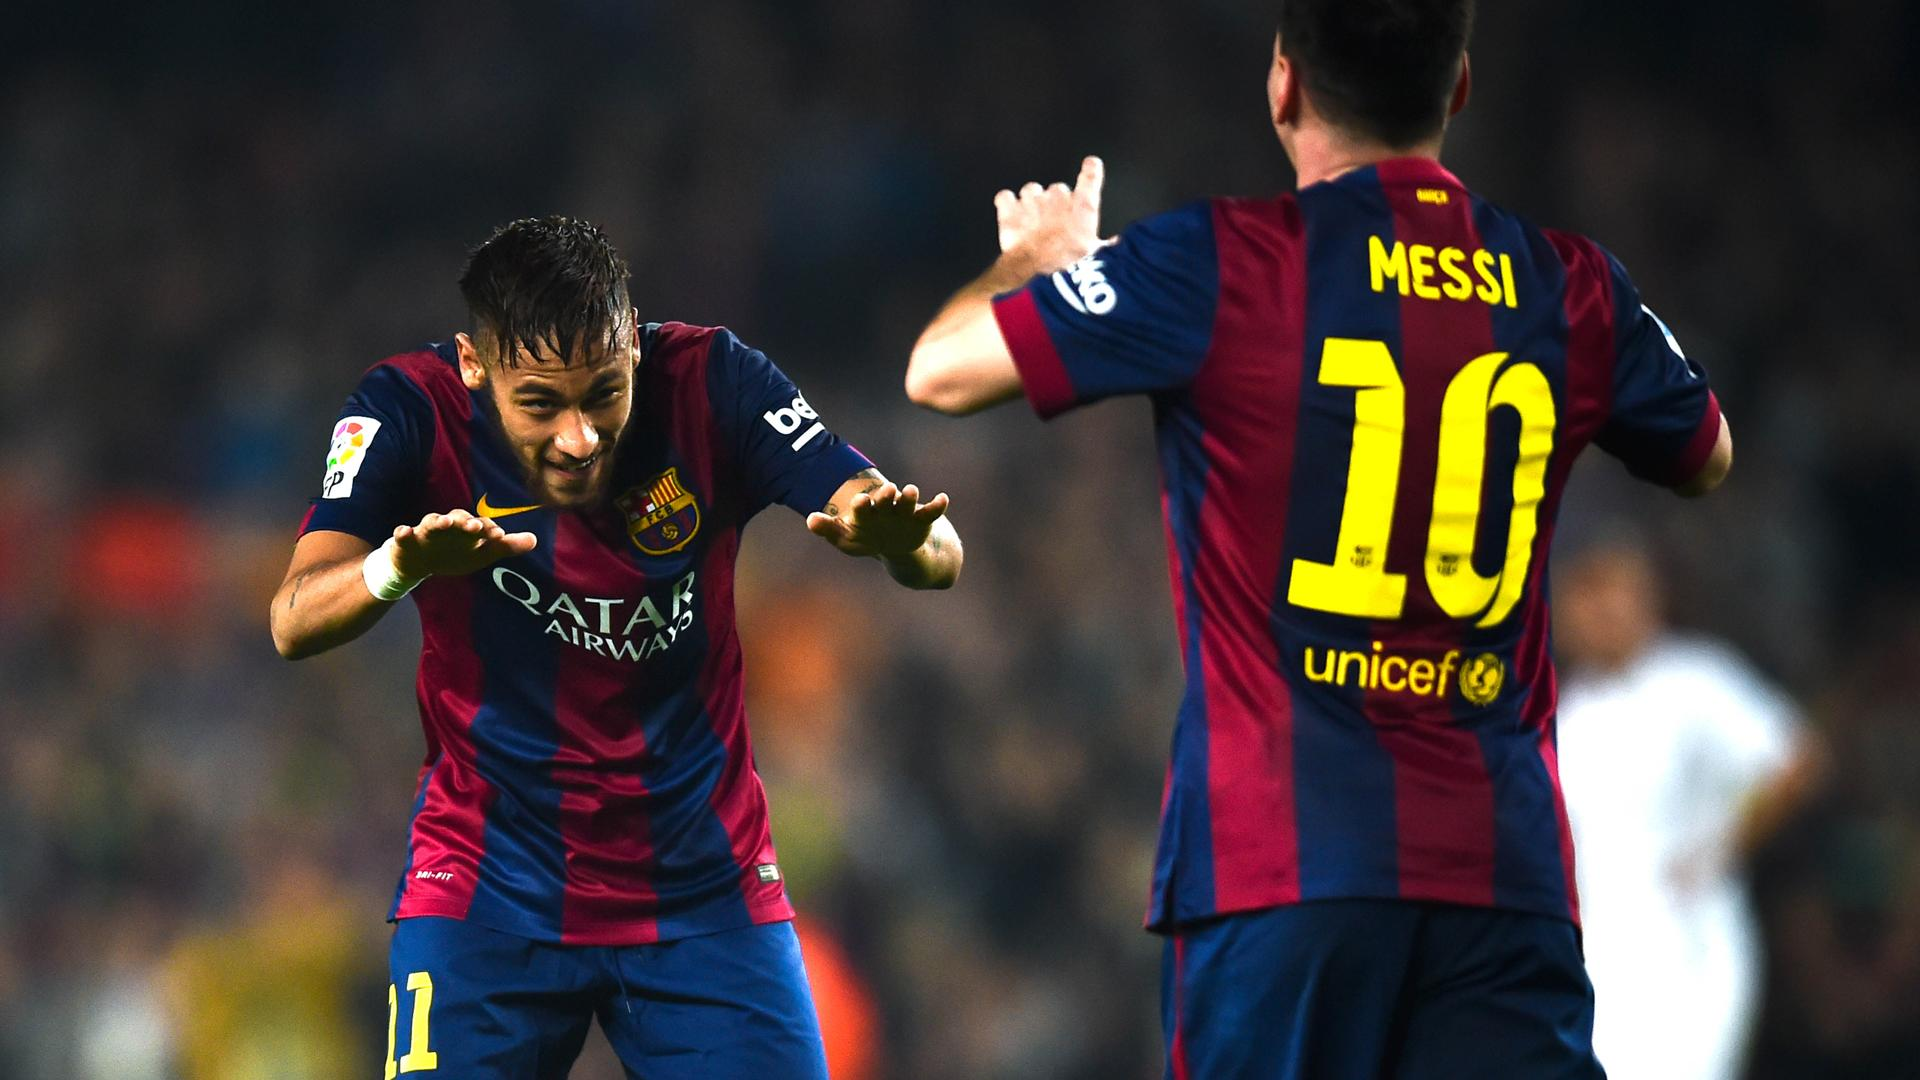 messi is person that i admire